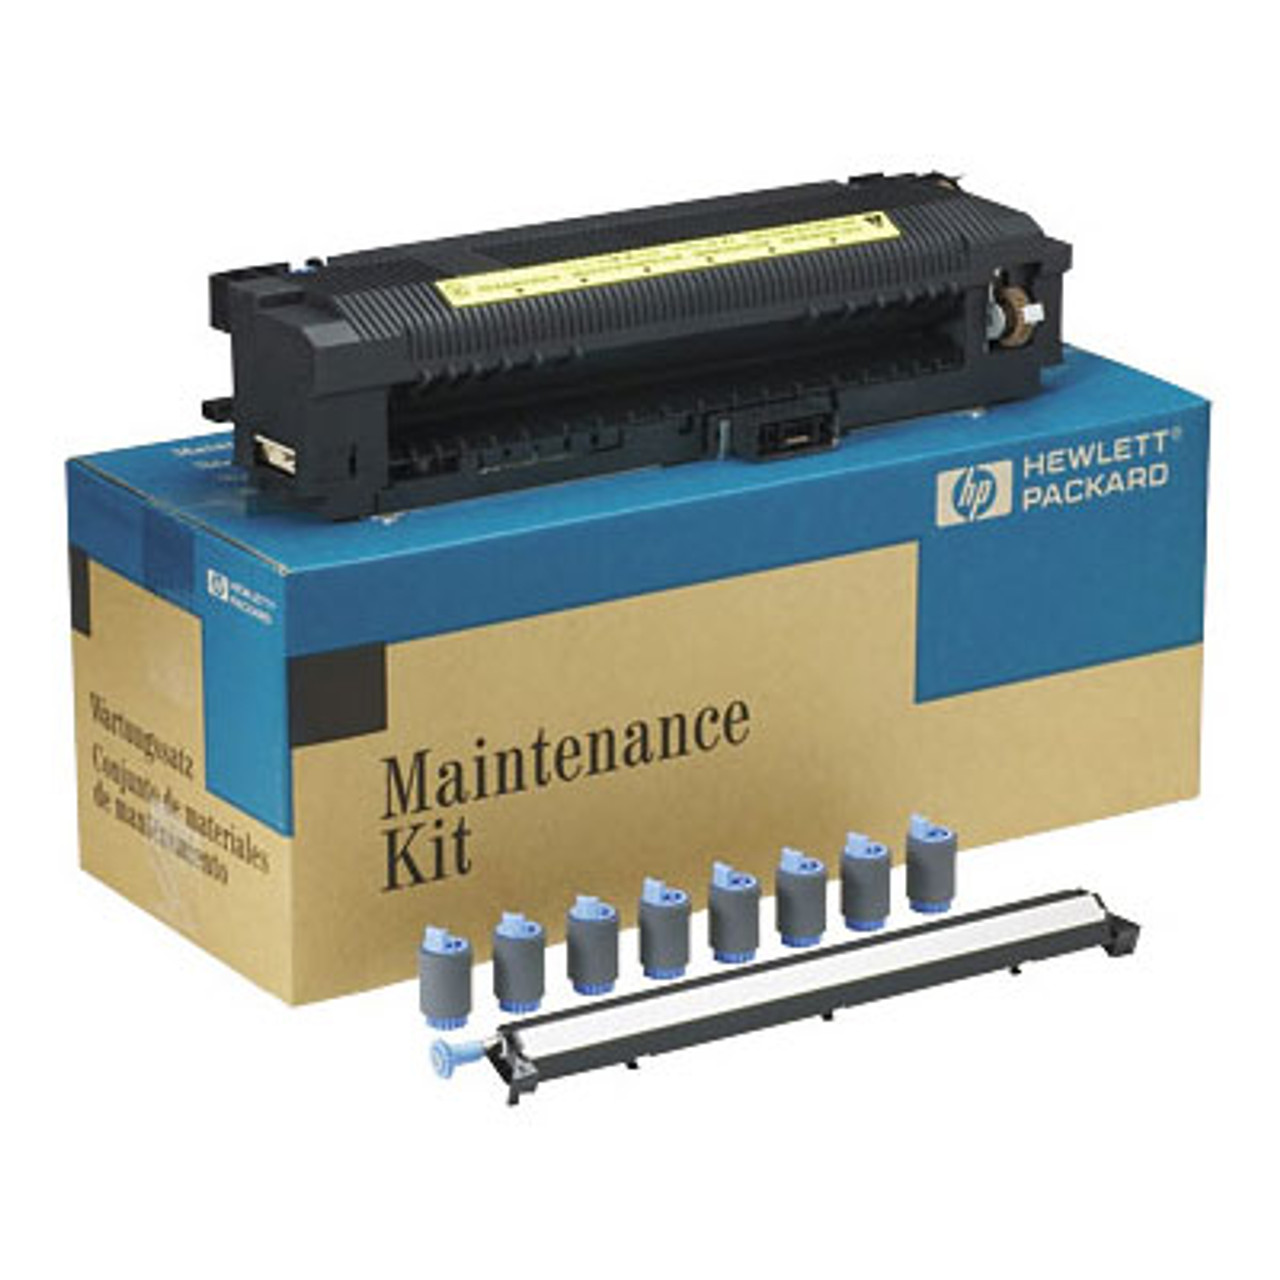 HP 8000 Maintenance Kit  - New